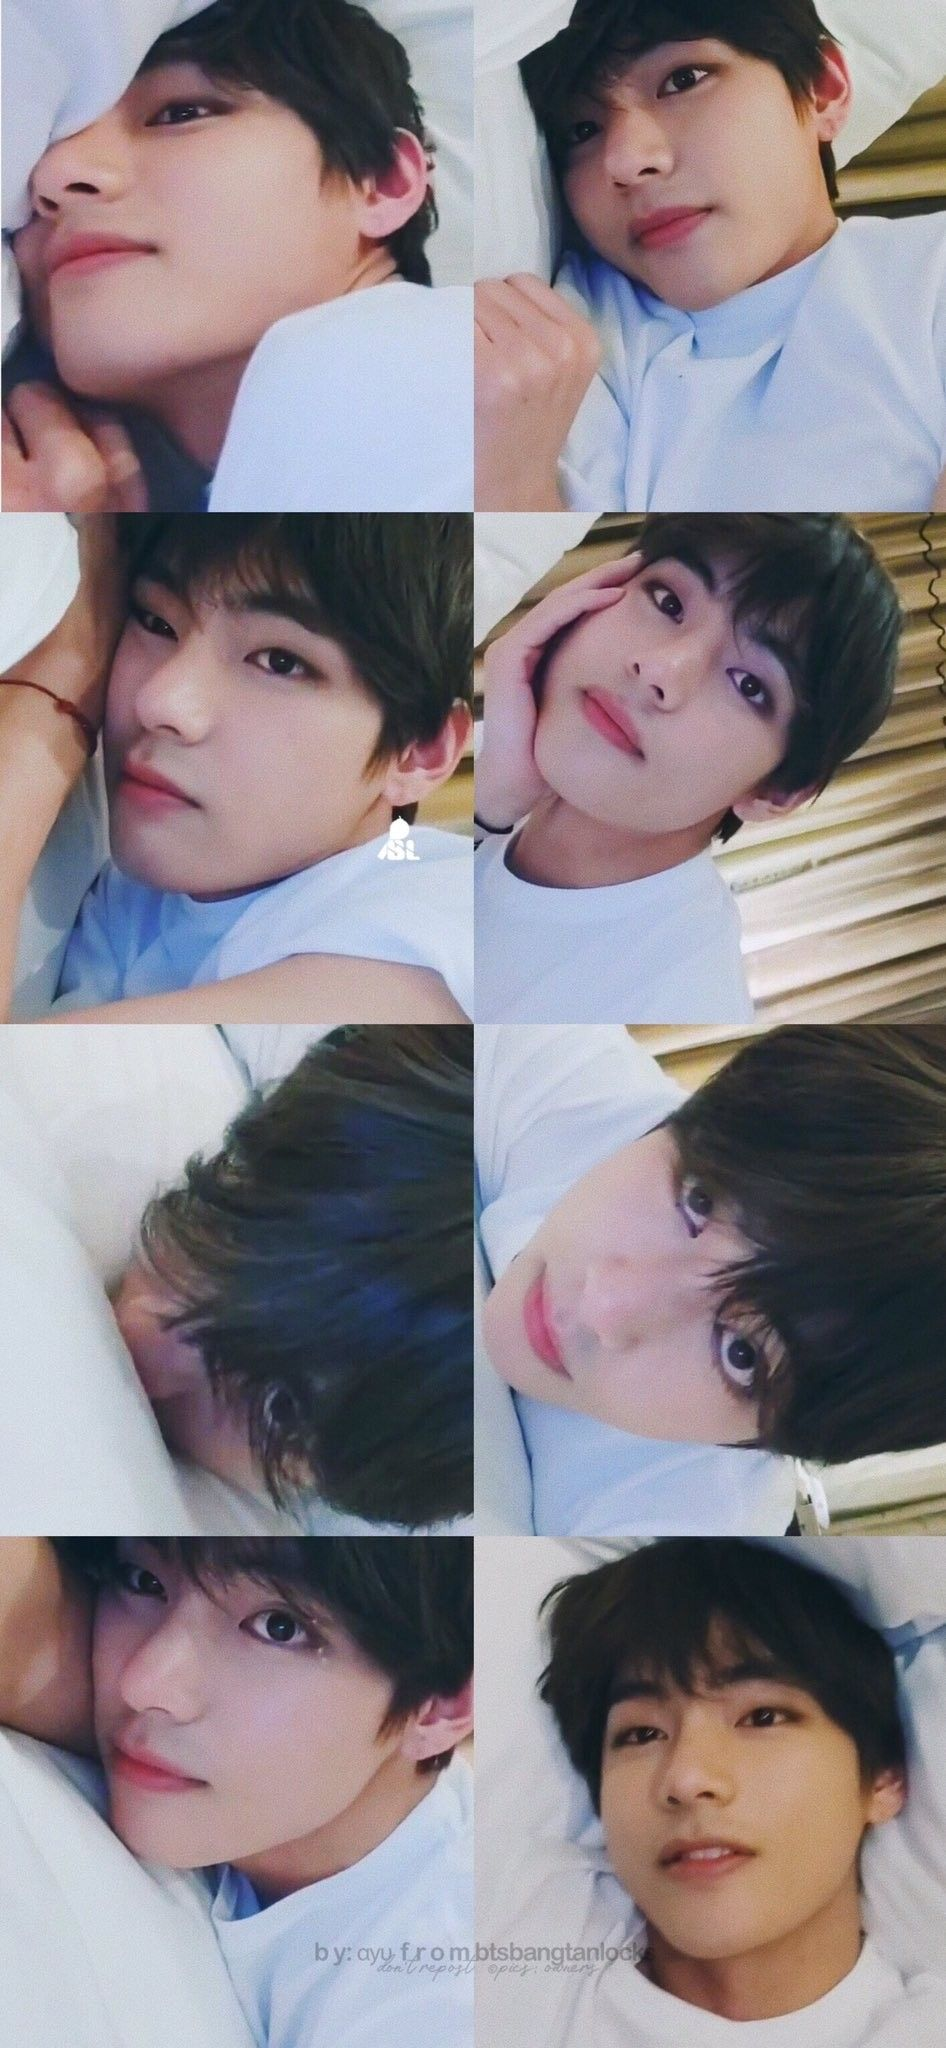 Taehyung On Vlive Wallpaper Credits To Twitter Btsbangtanlocks C Taehyung Bts Taehyung Taehyung Kim Taehyung Bts taehyung vlive wallpaper